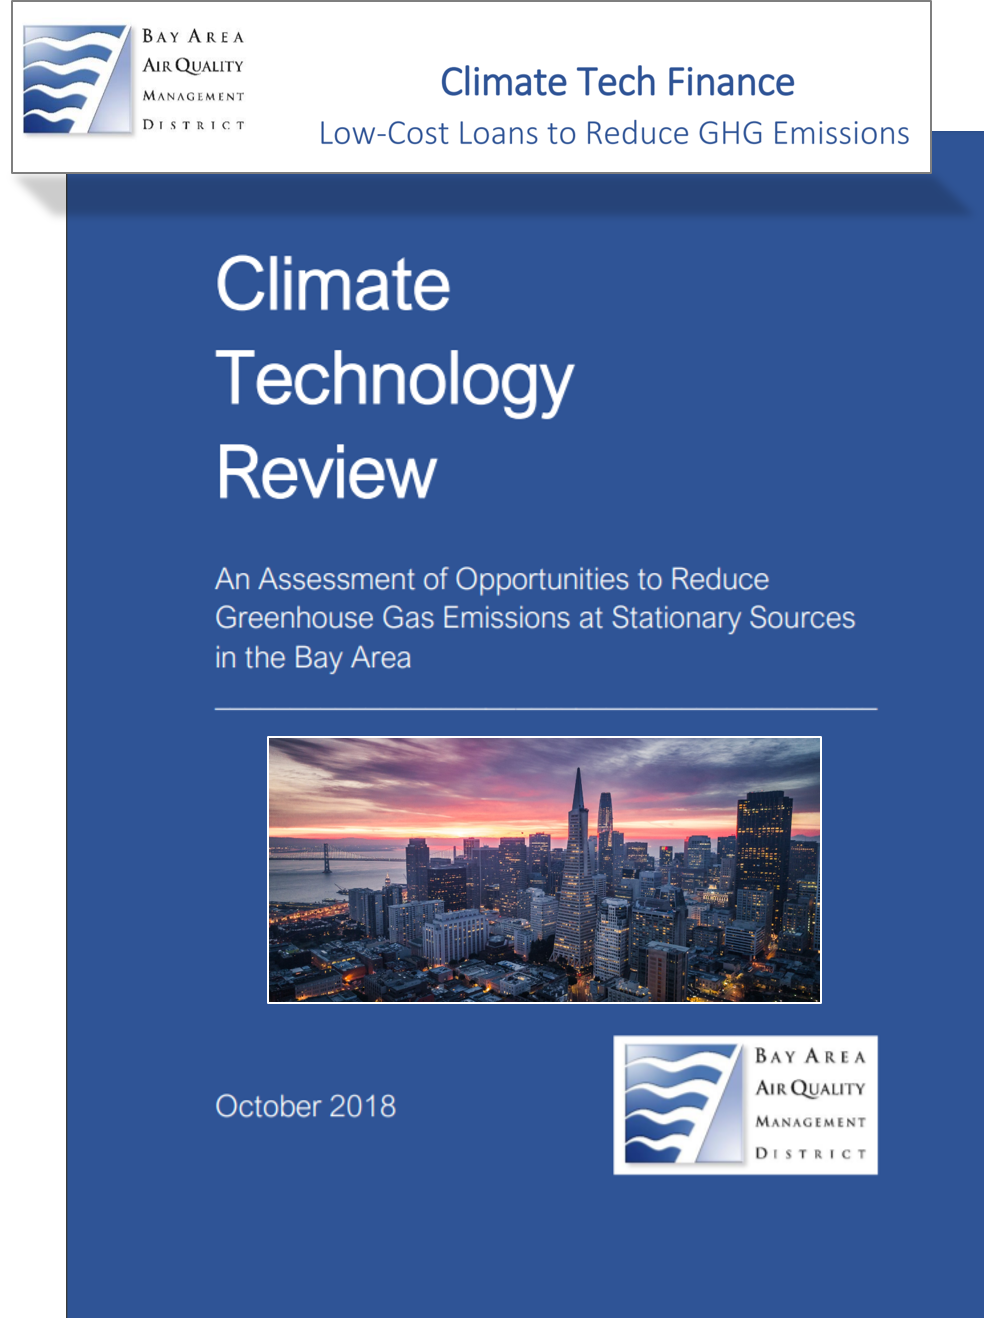 California Agency Uses Energetics Climate Technology Review To